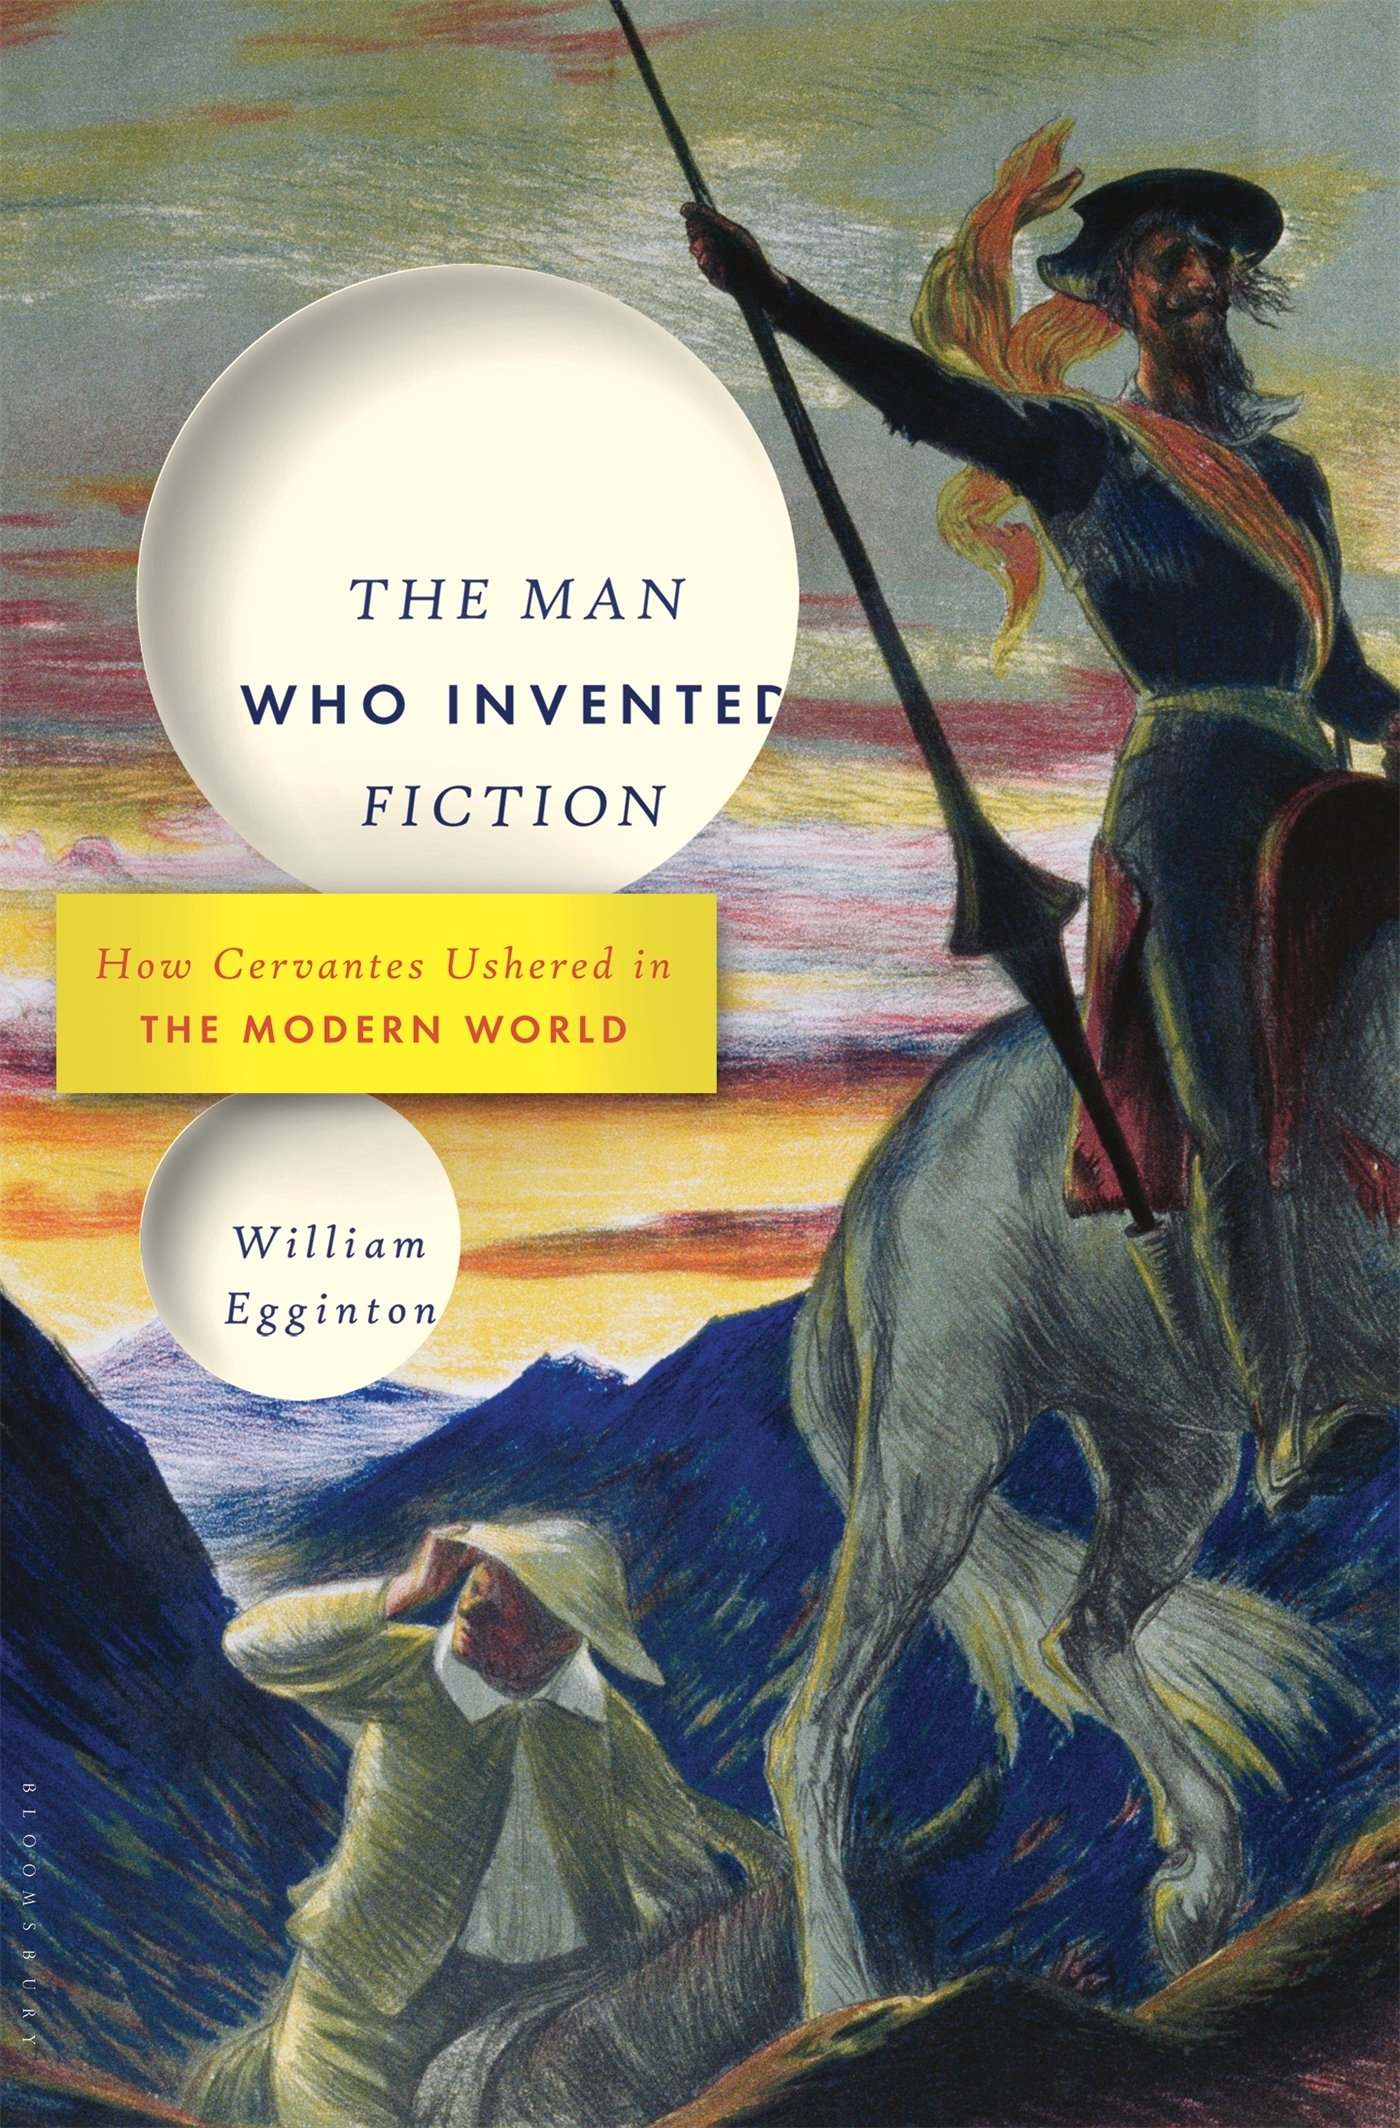 The Man Who Invented Fiction: How Cervantes Ushered In The